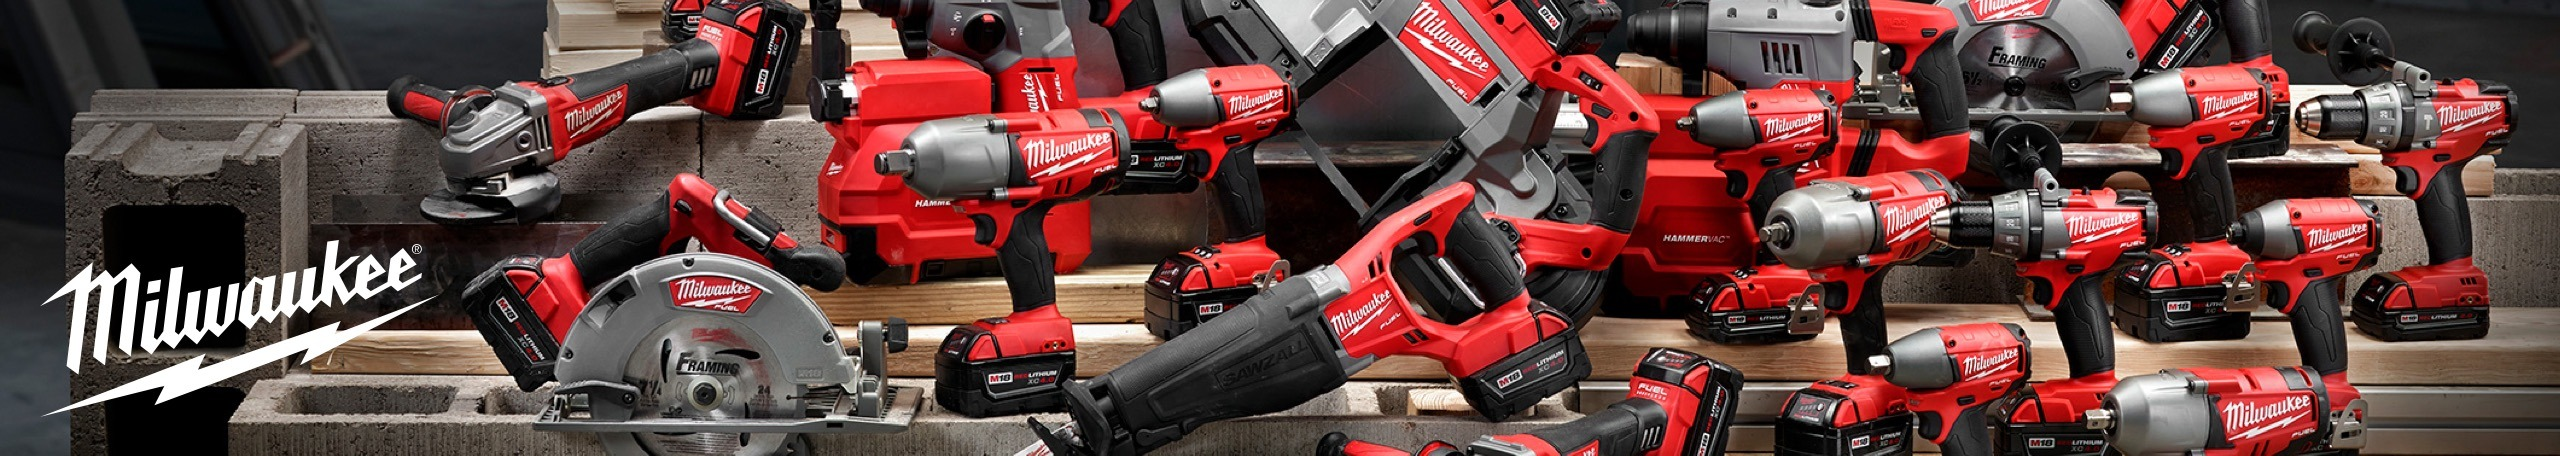 Shop Milwaukee power tools at Modern Building Products